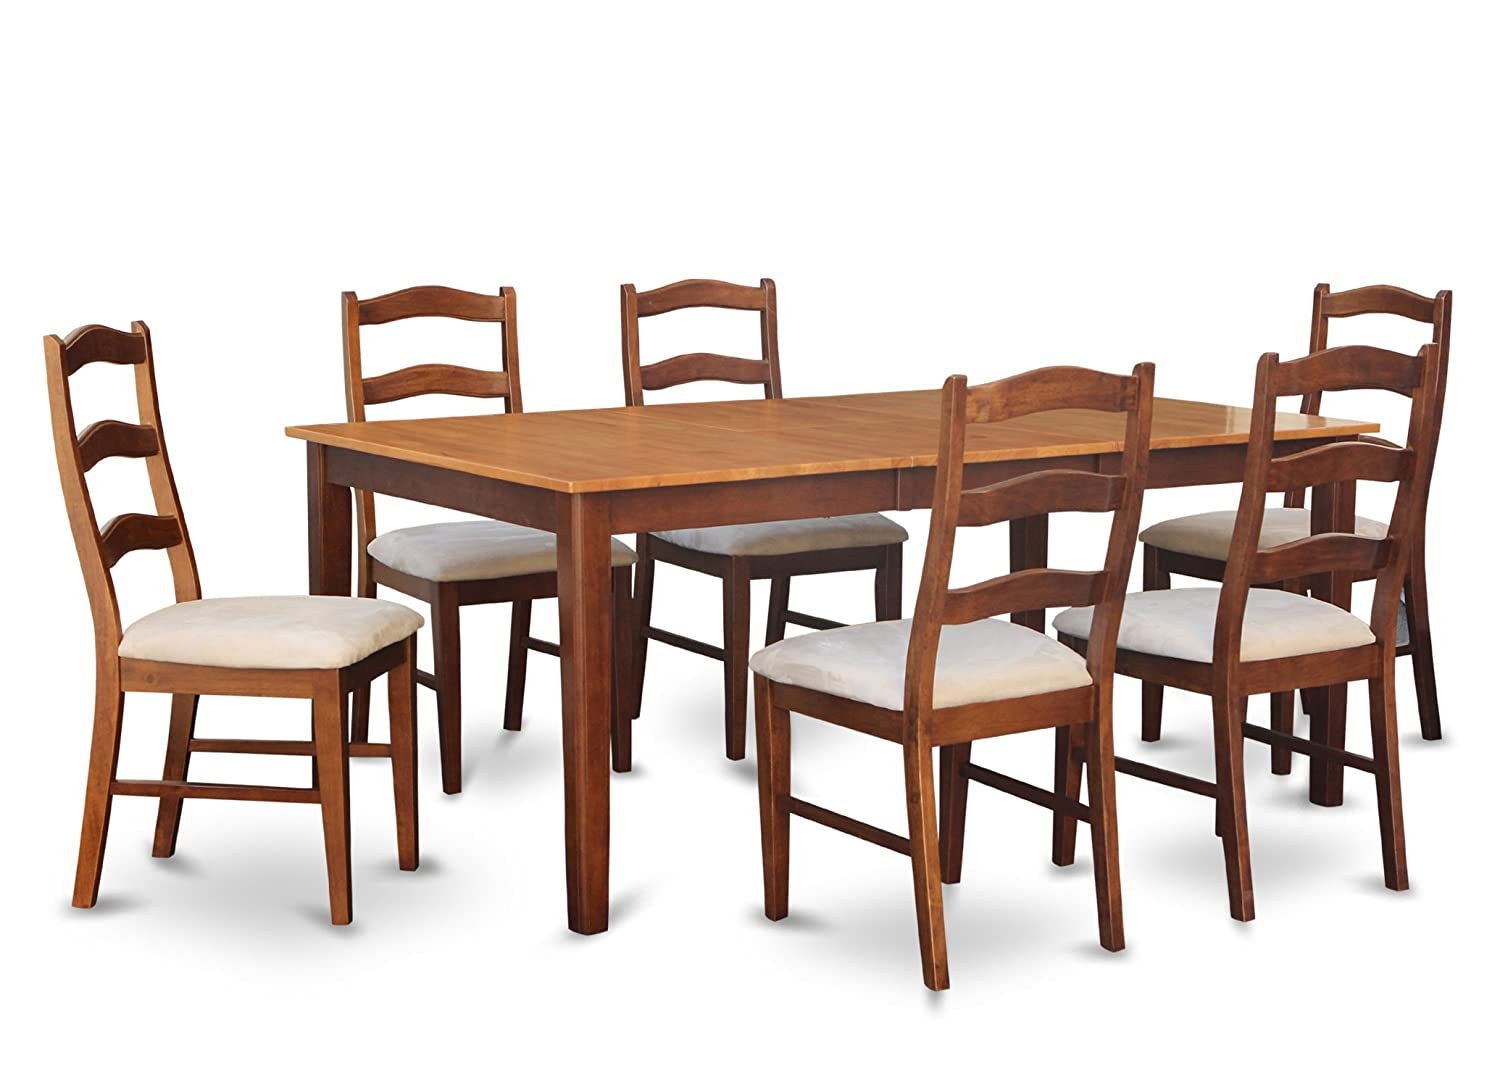 HENL7-BRN-C 7 Pc Dining room set-Dining Table with Leaf and 6 Dining Chairs.